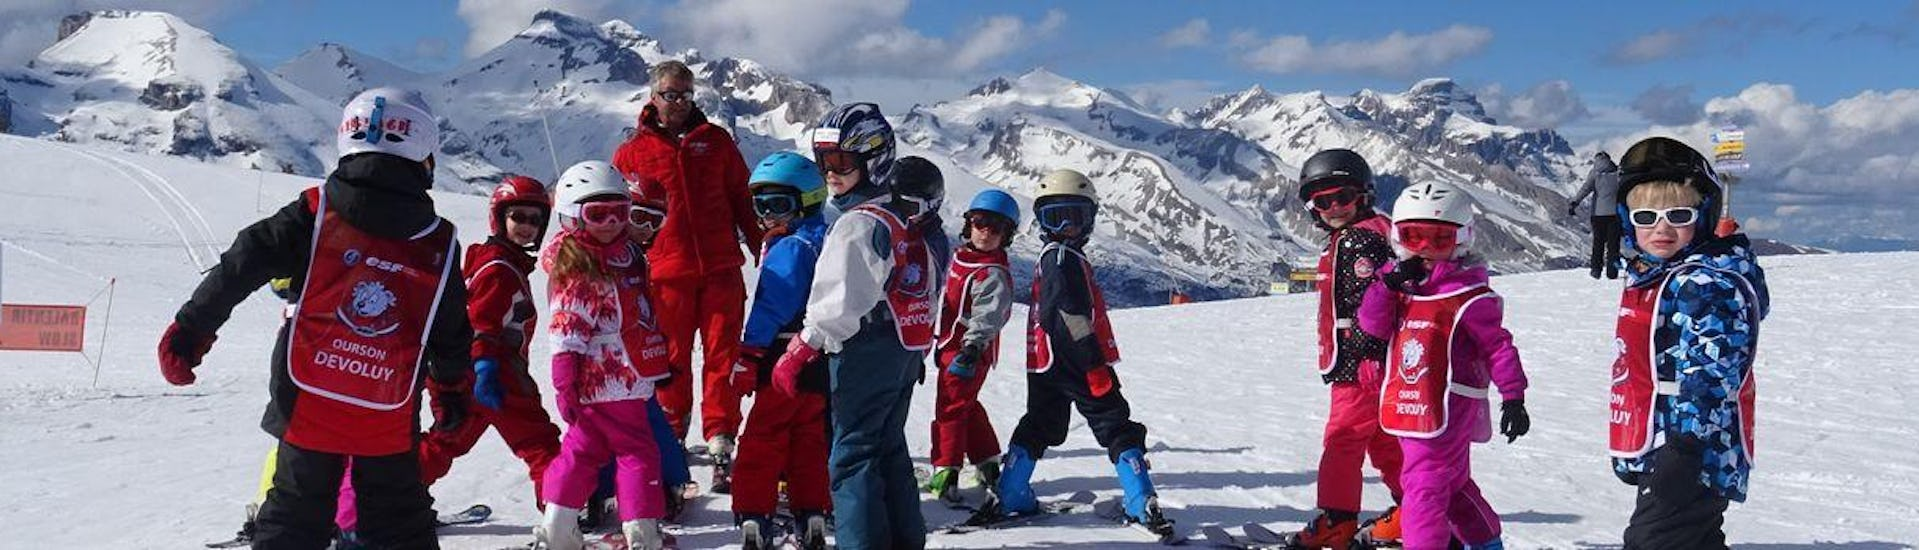 Kids are standing at the top of the slope ready to start their Kids Ski Lessons (6-12y.) - February - Morning -Intermediate with the ski school ESF du Dévoluy.